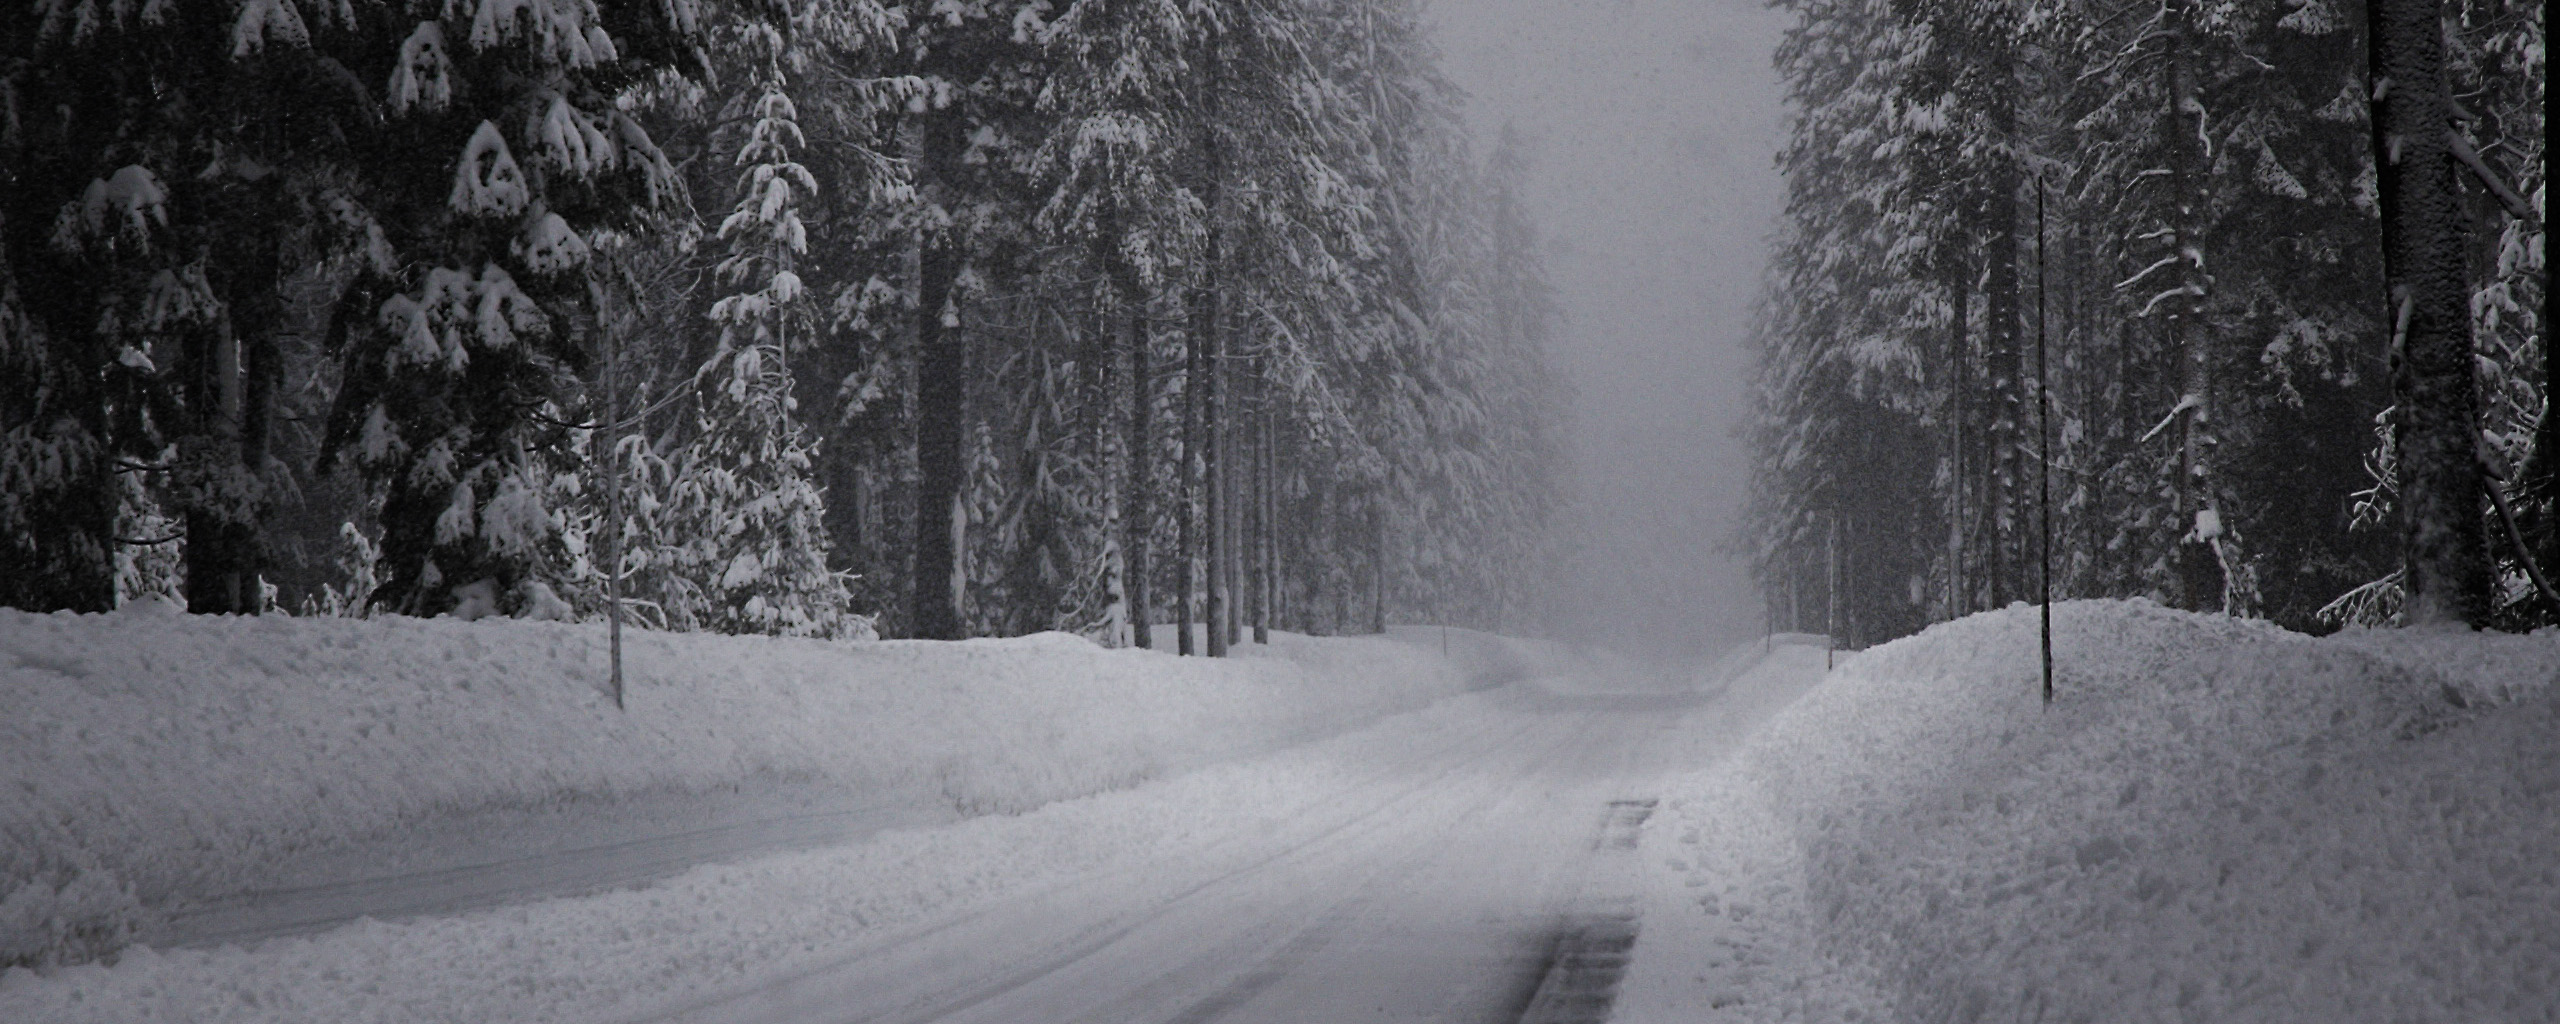 Download Best winter road 2560x1024 Wallpapers & Images Free | LatestWall